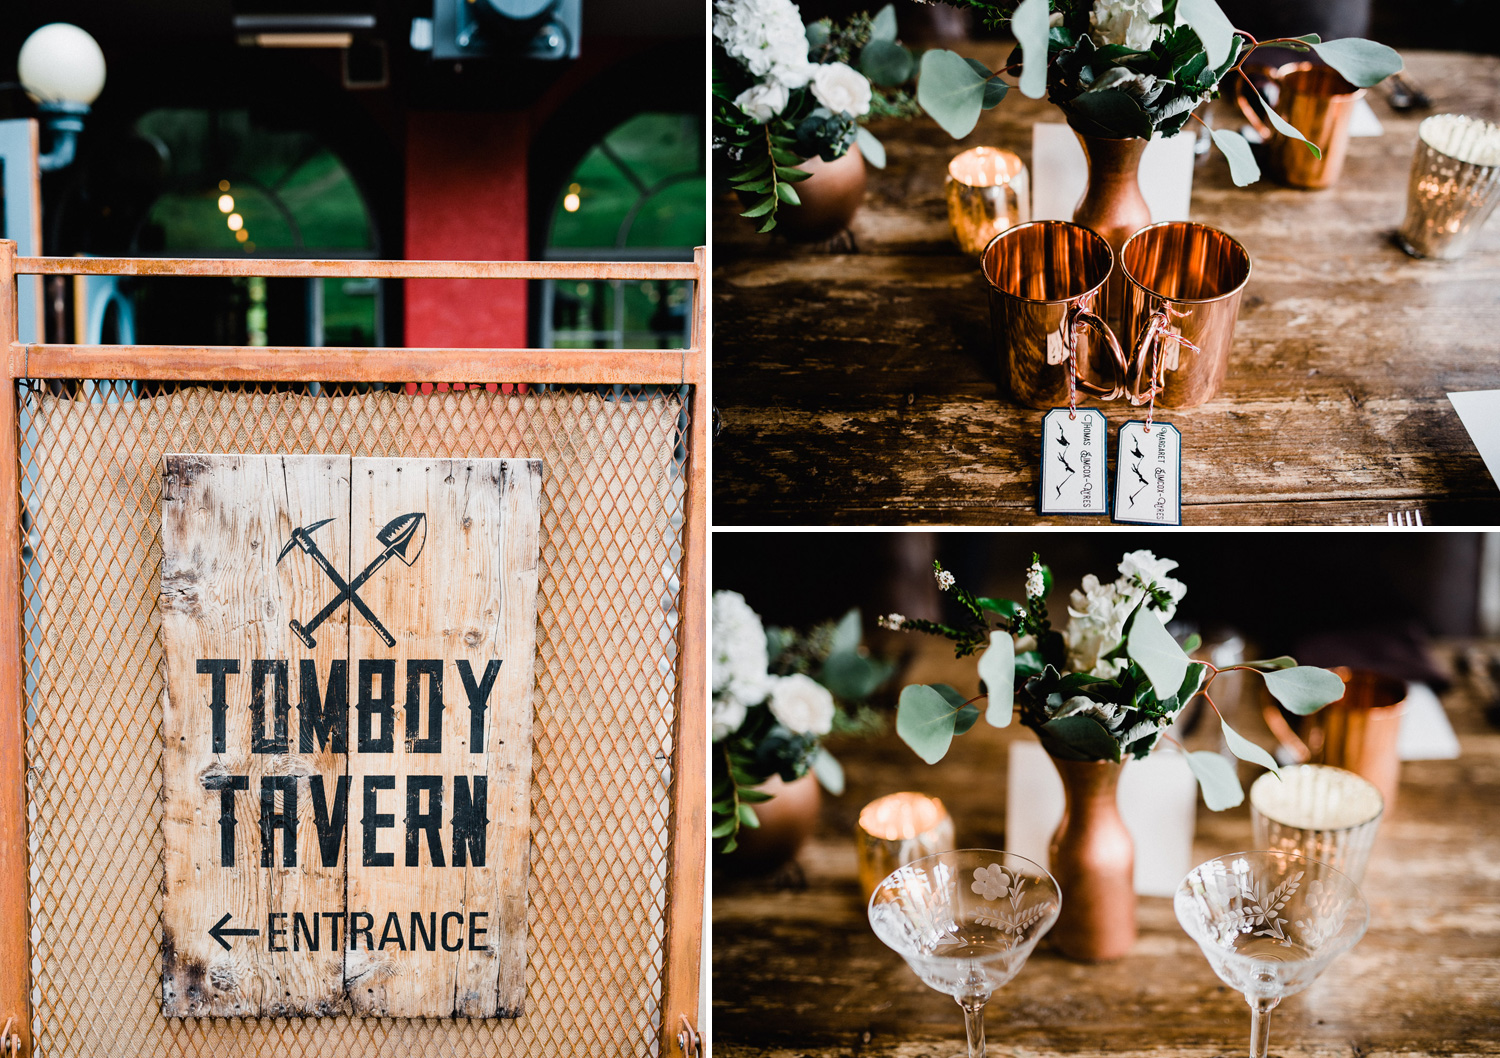 tomboy tavern wedding details